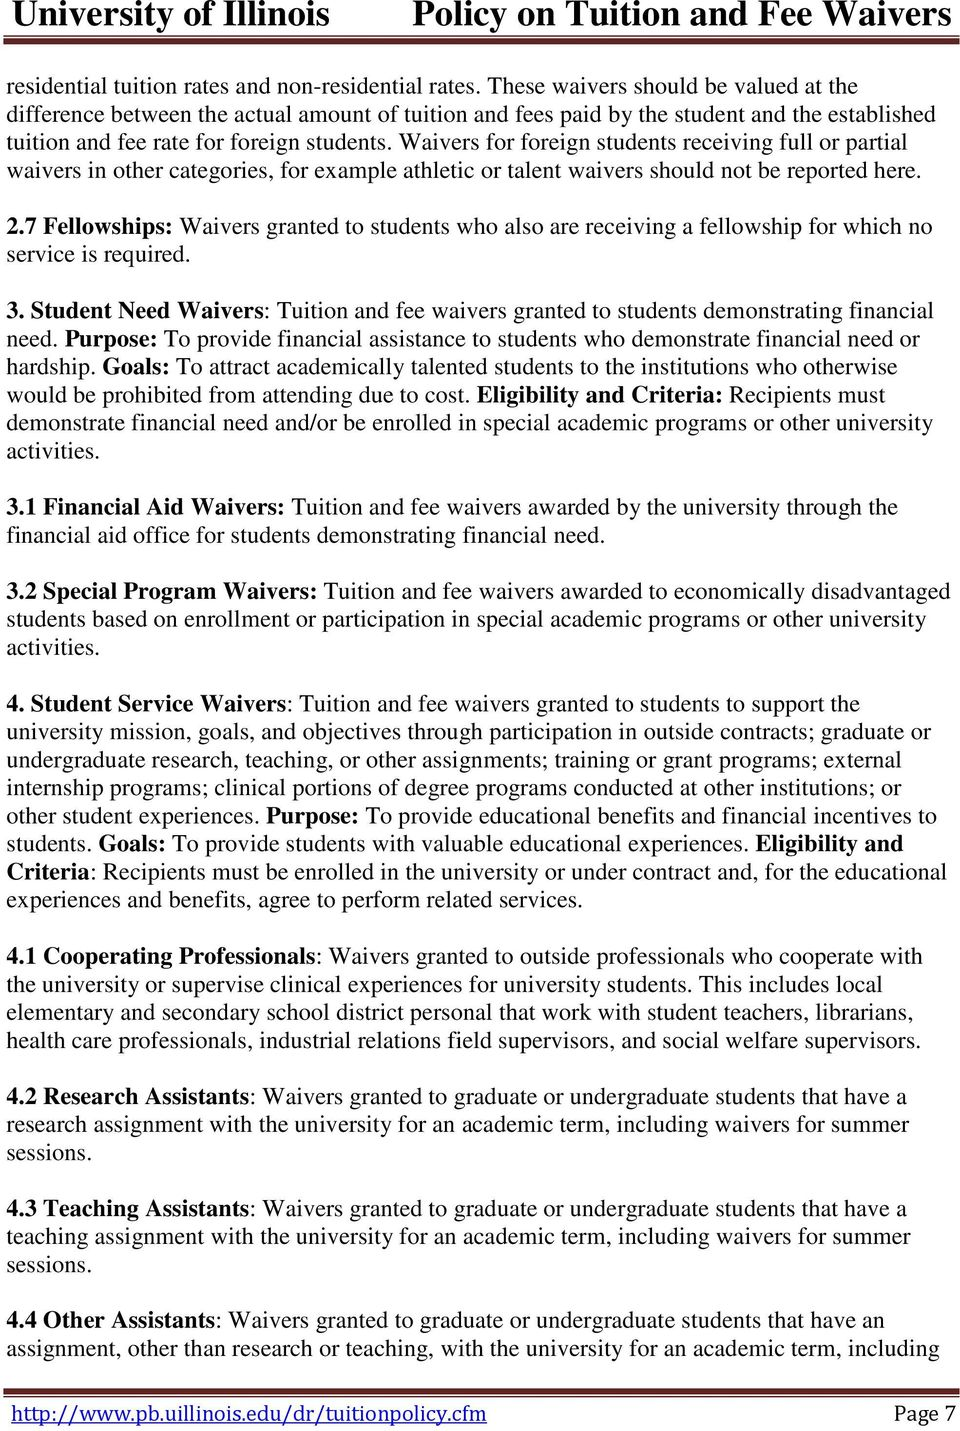 Waivers for foreign students receiving full or partial waivers in other categories, for example athletic or talent waivers should not be reported here. 2.